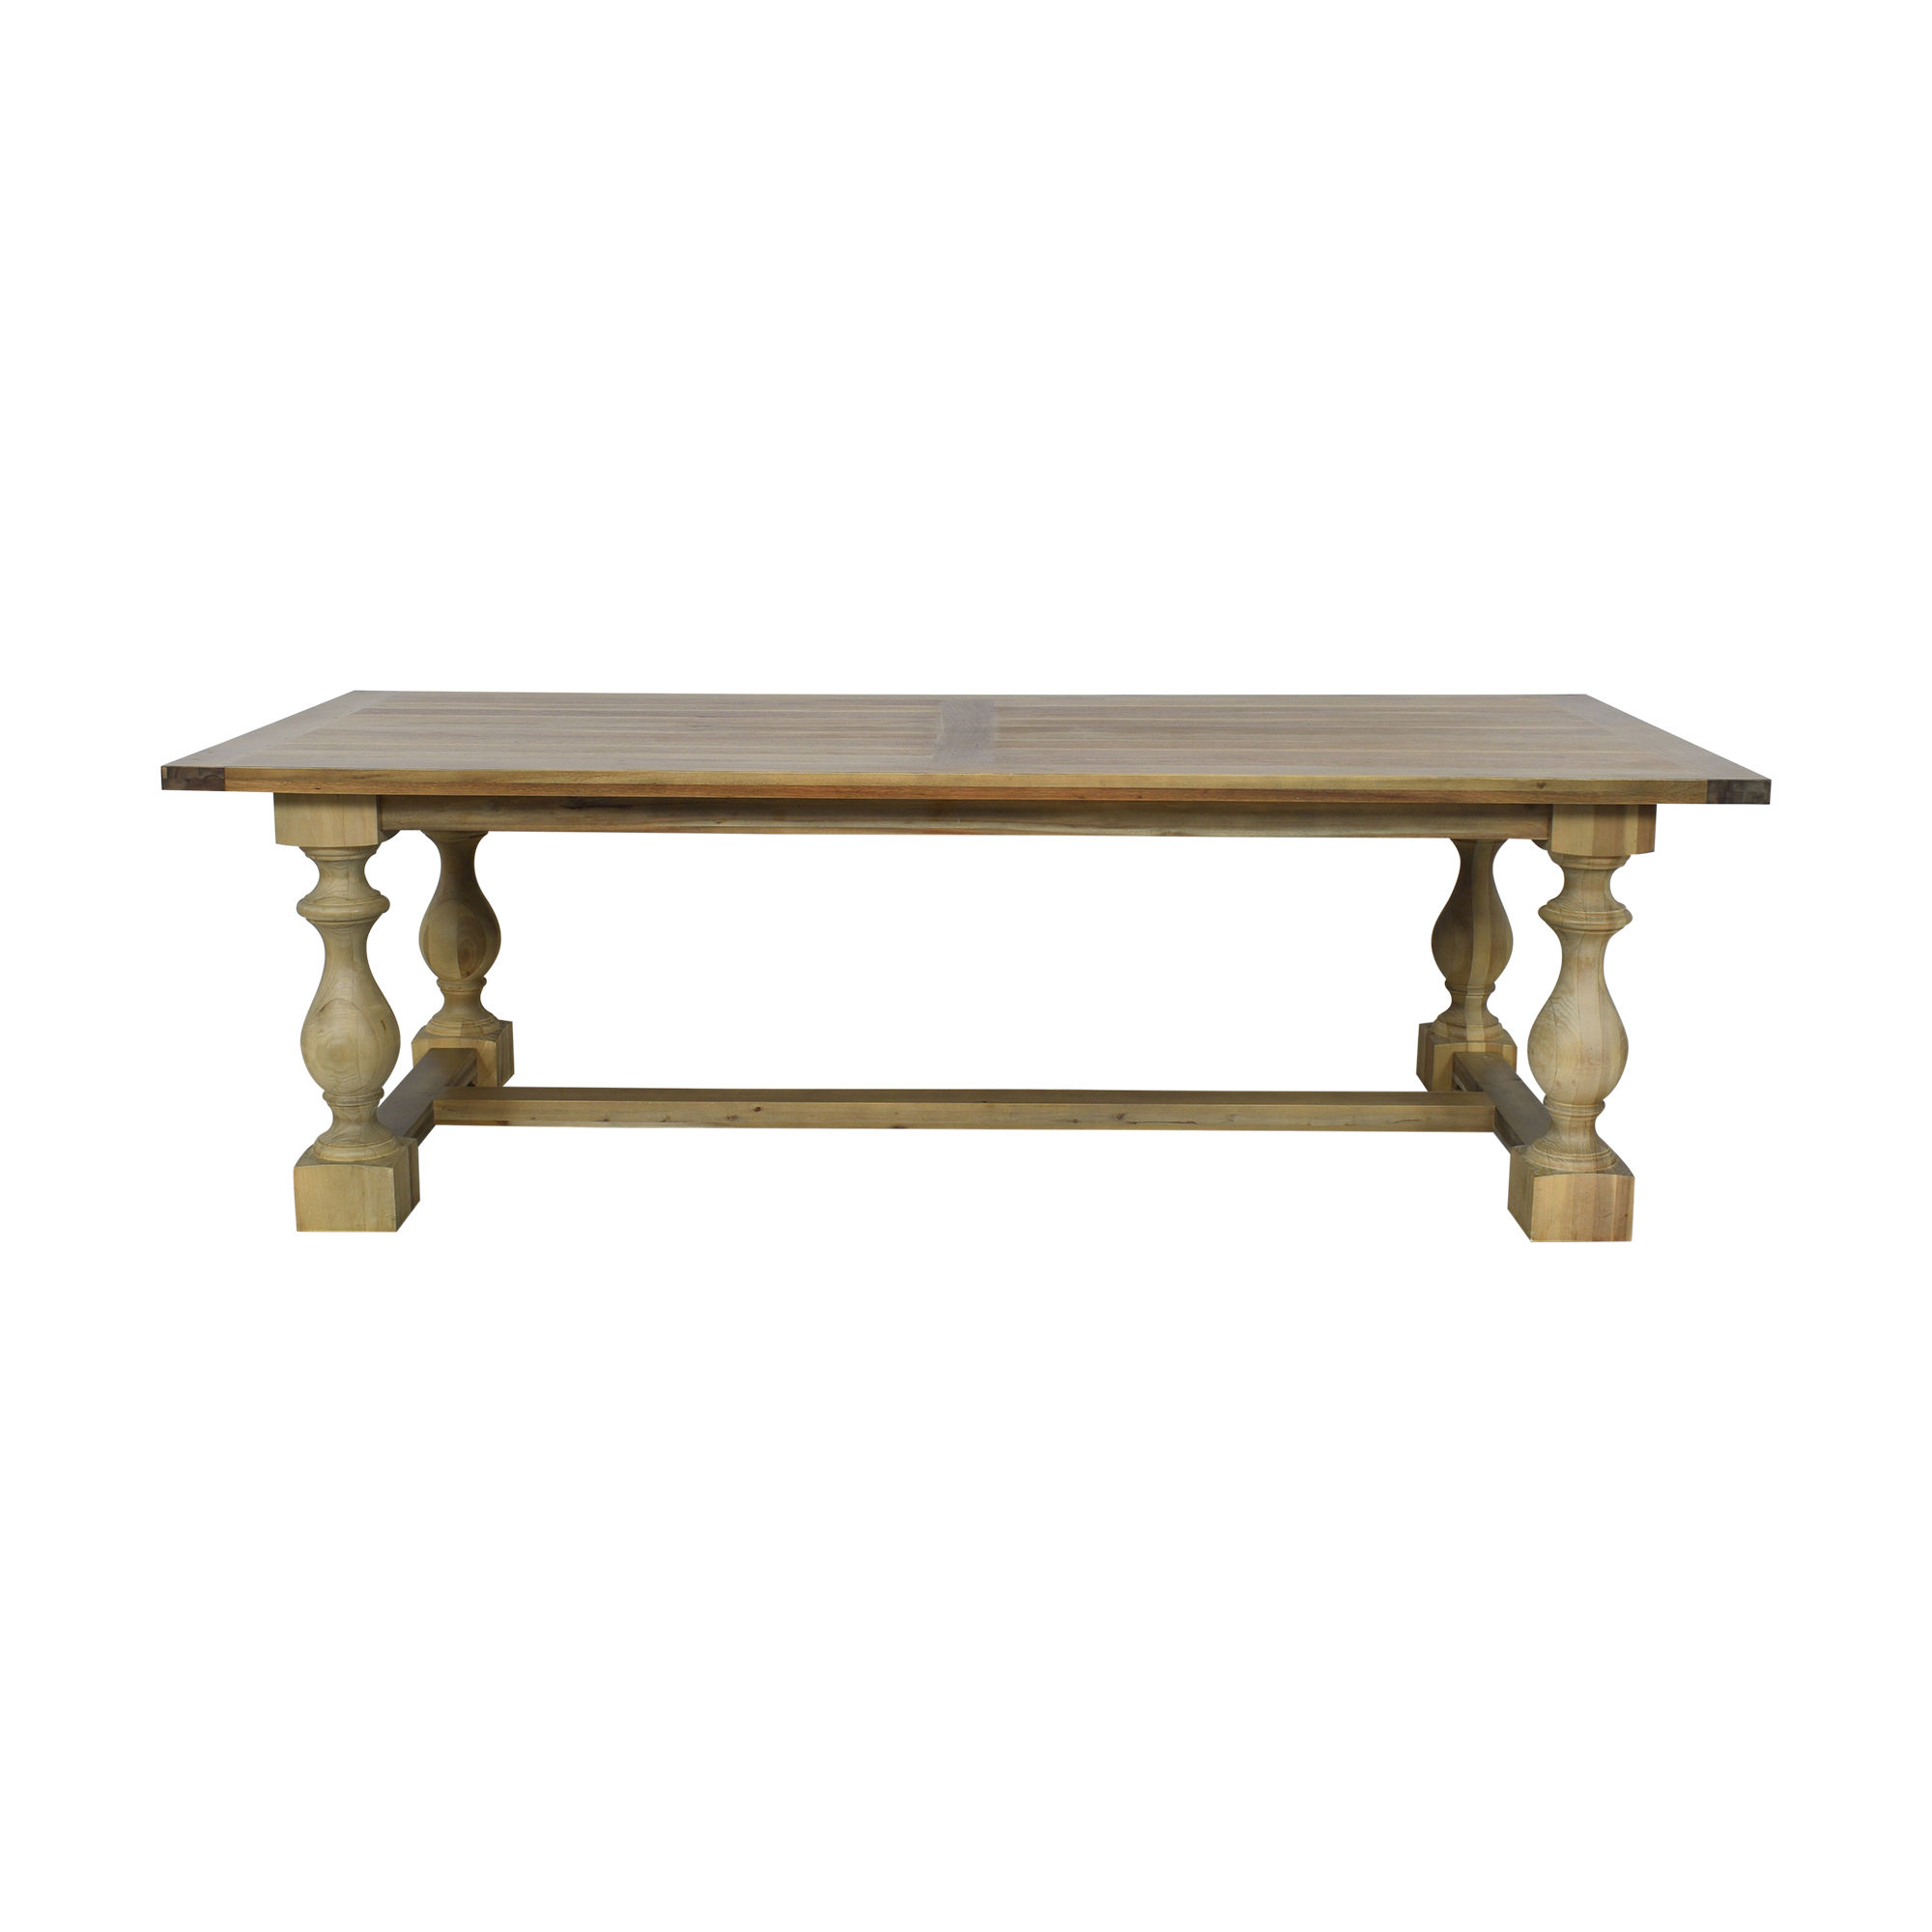 Restoration Hardware Restoration Hardware 17TH C. Monastery Rectangular Dining Table ma